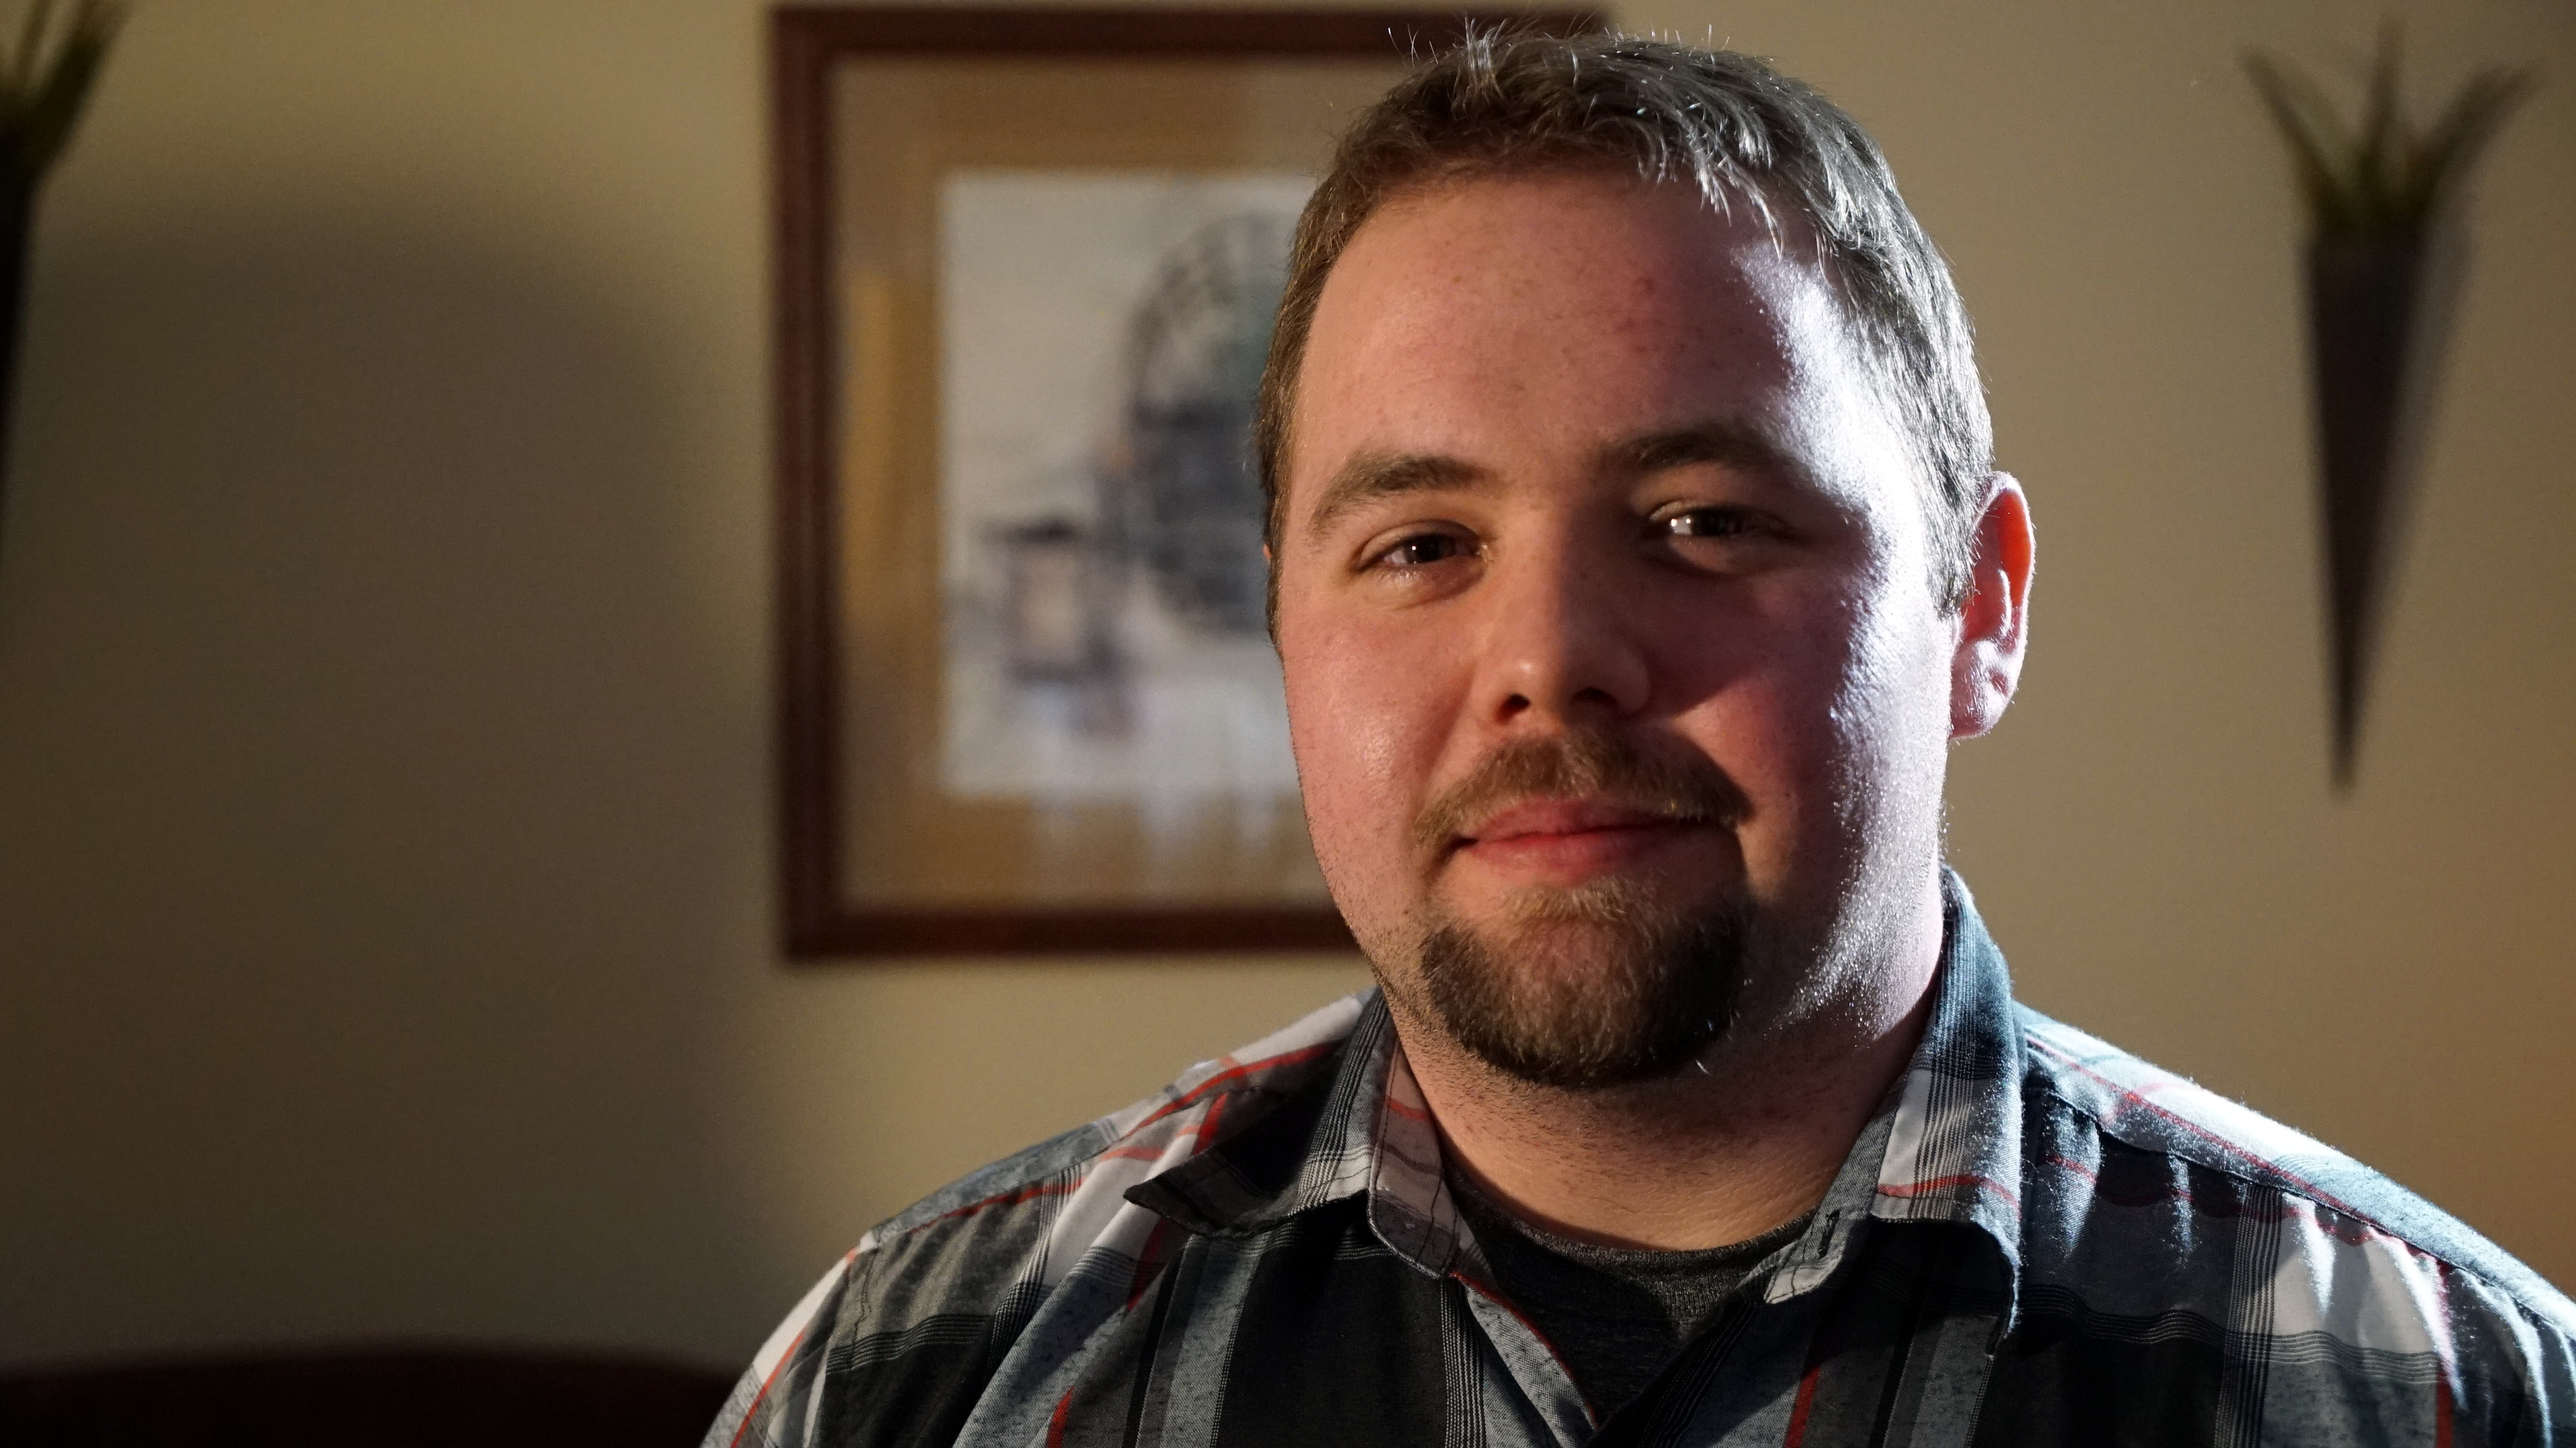 Patrick Pickett says he's learned to cope with the disappearance of his older brother, but would like answers about his whereabouts. (Paul Pickett/CBC)